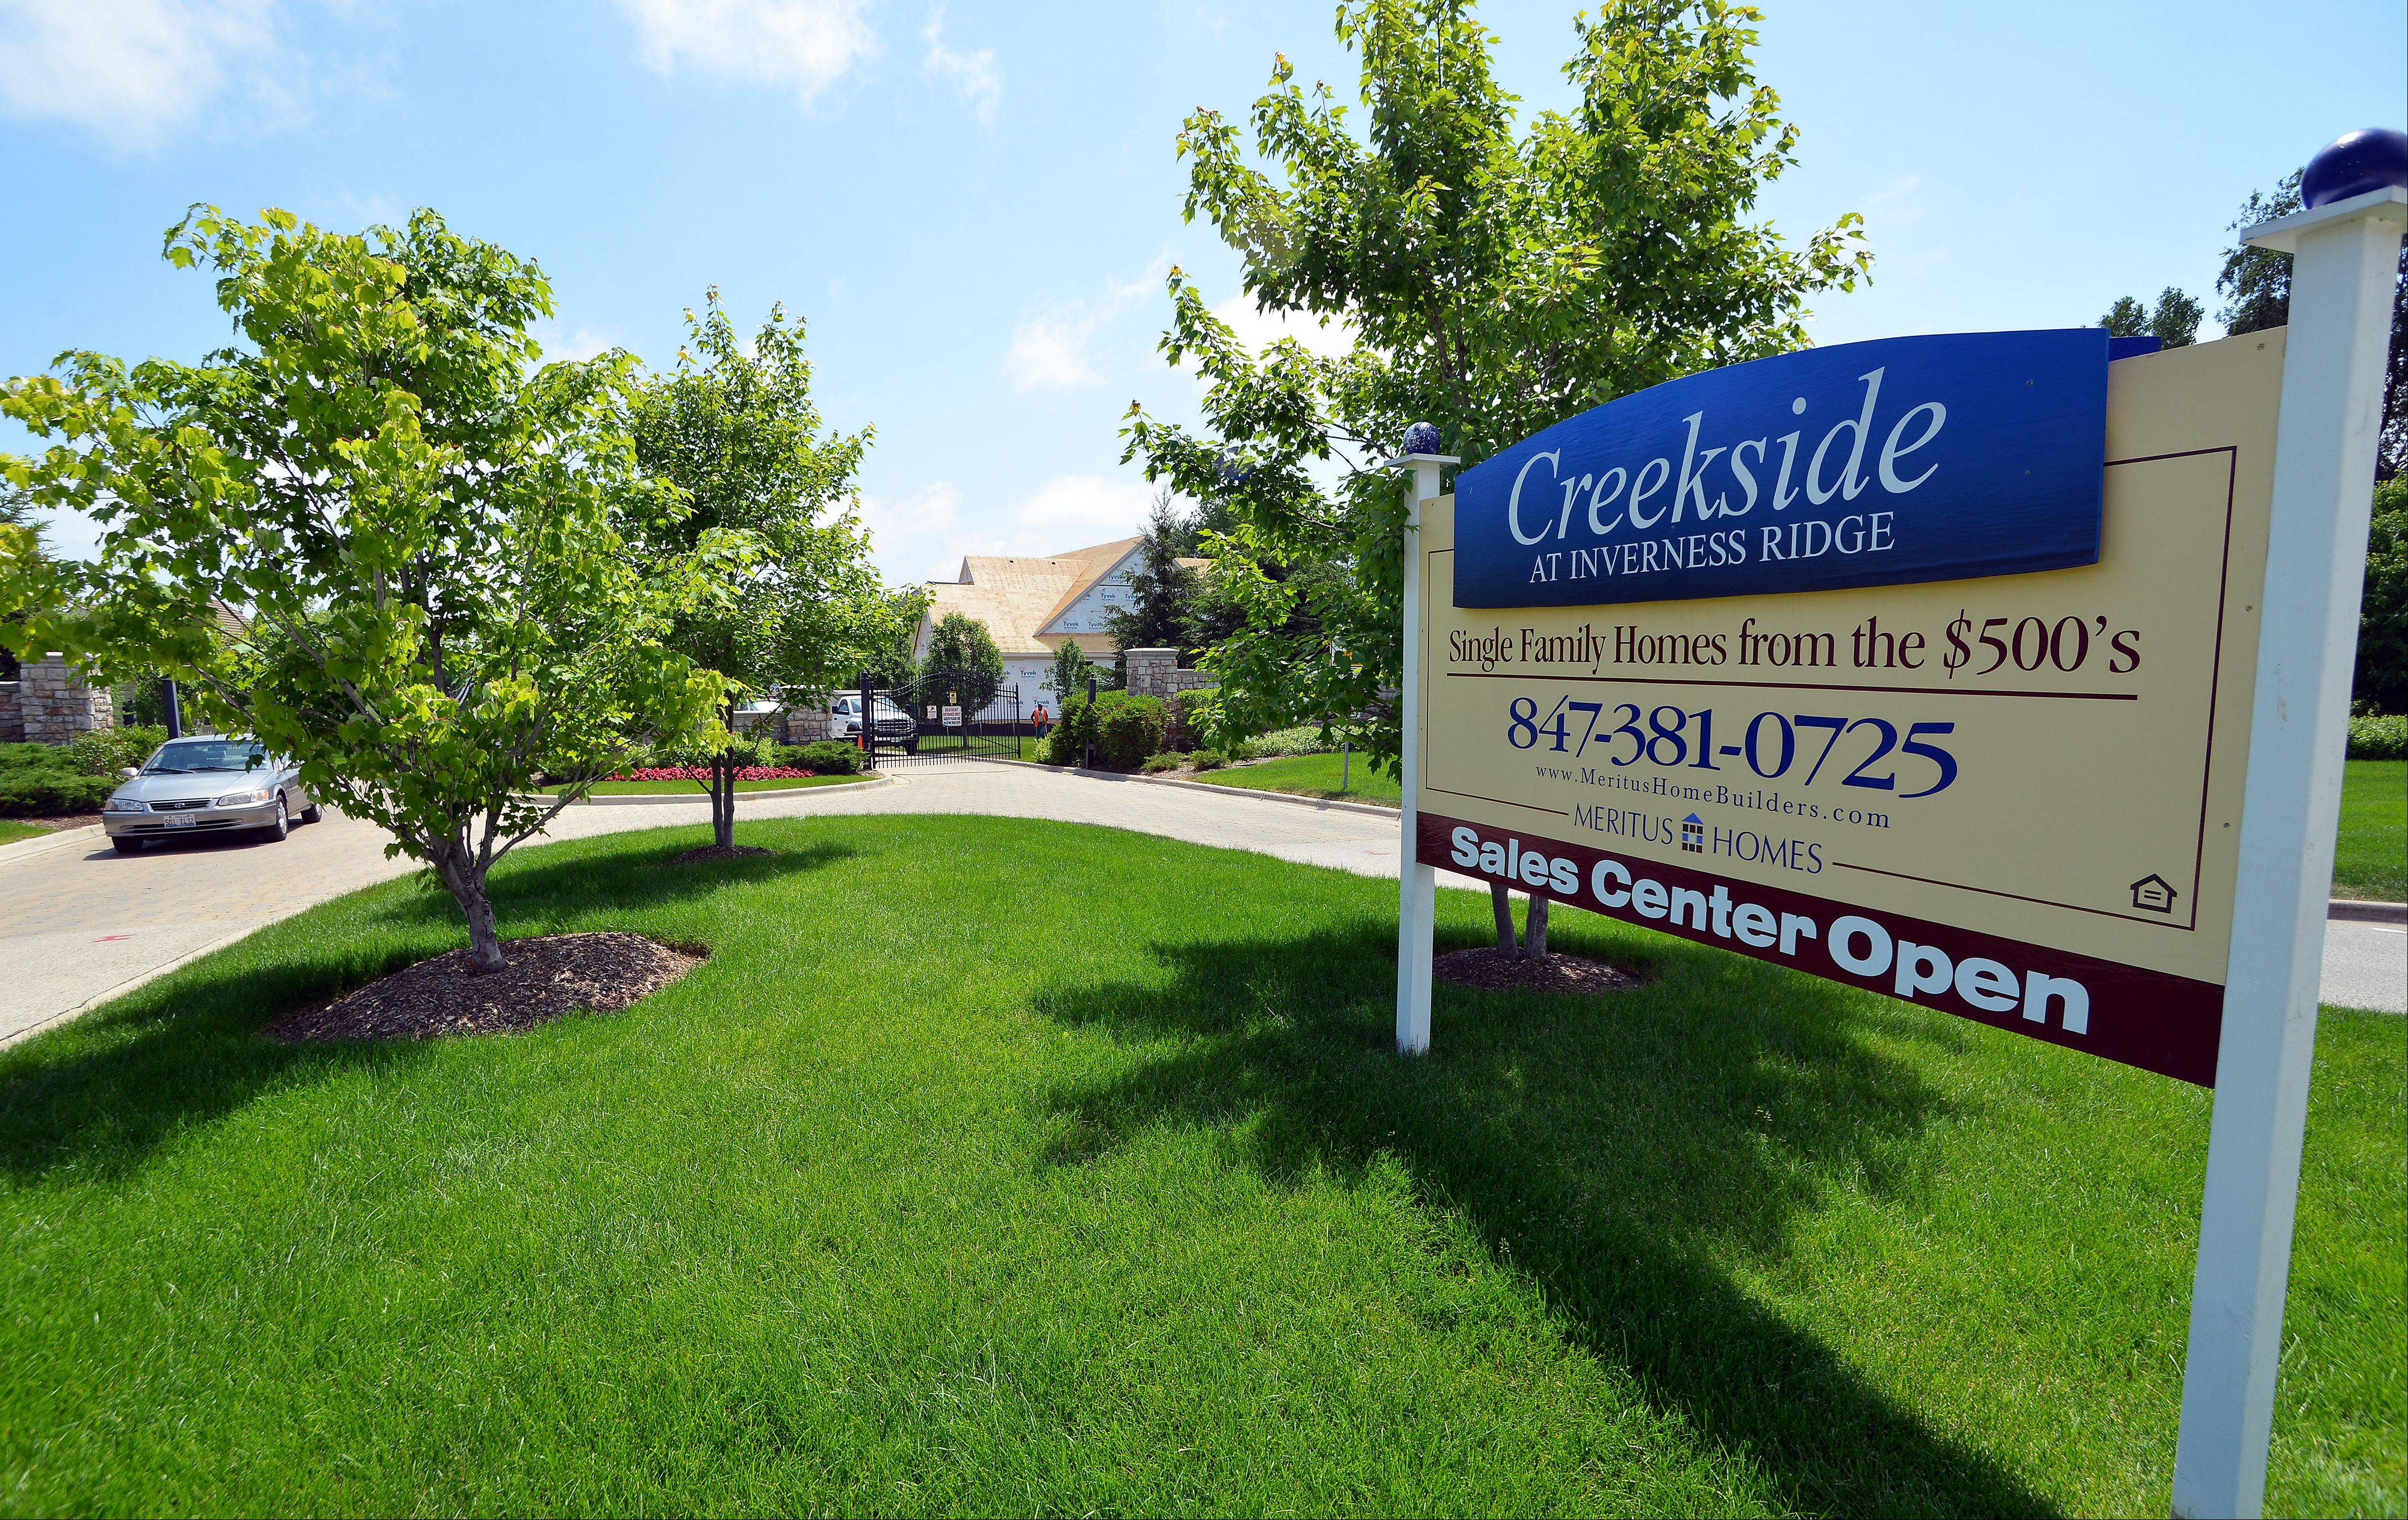 Creekside at Inverness Ridge in Inverness is a gated community with low-maintenance homesites.